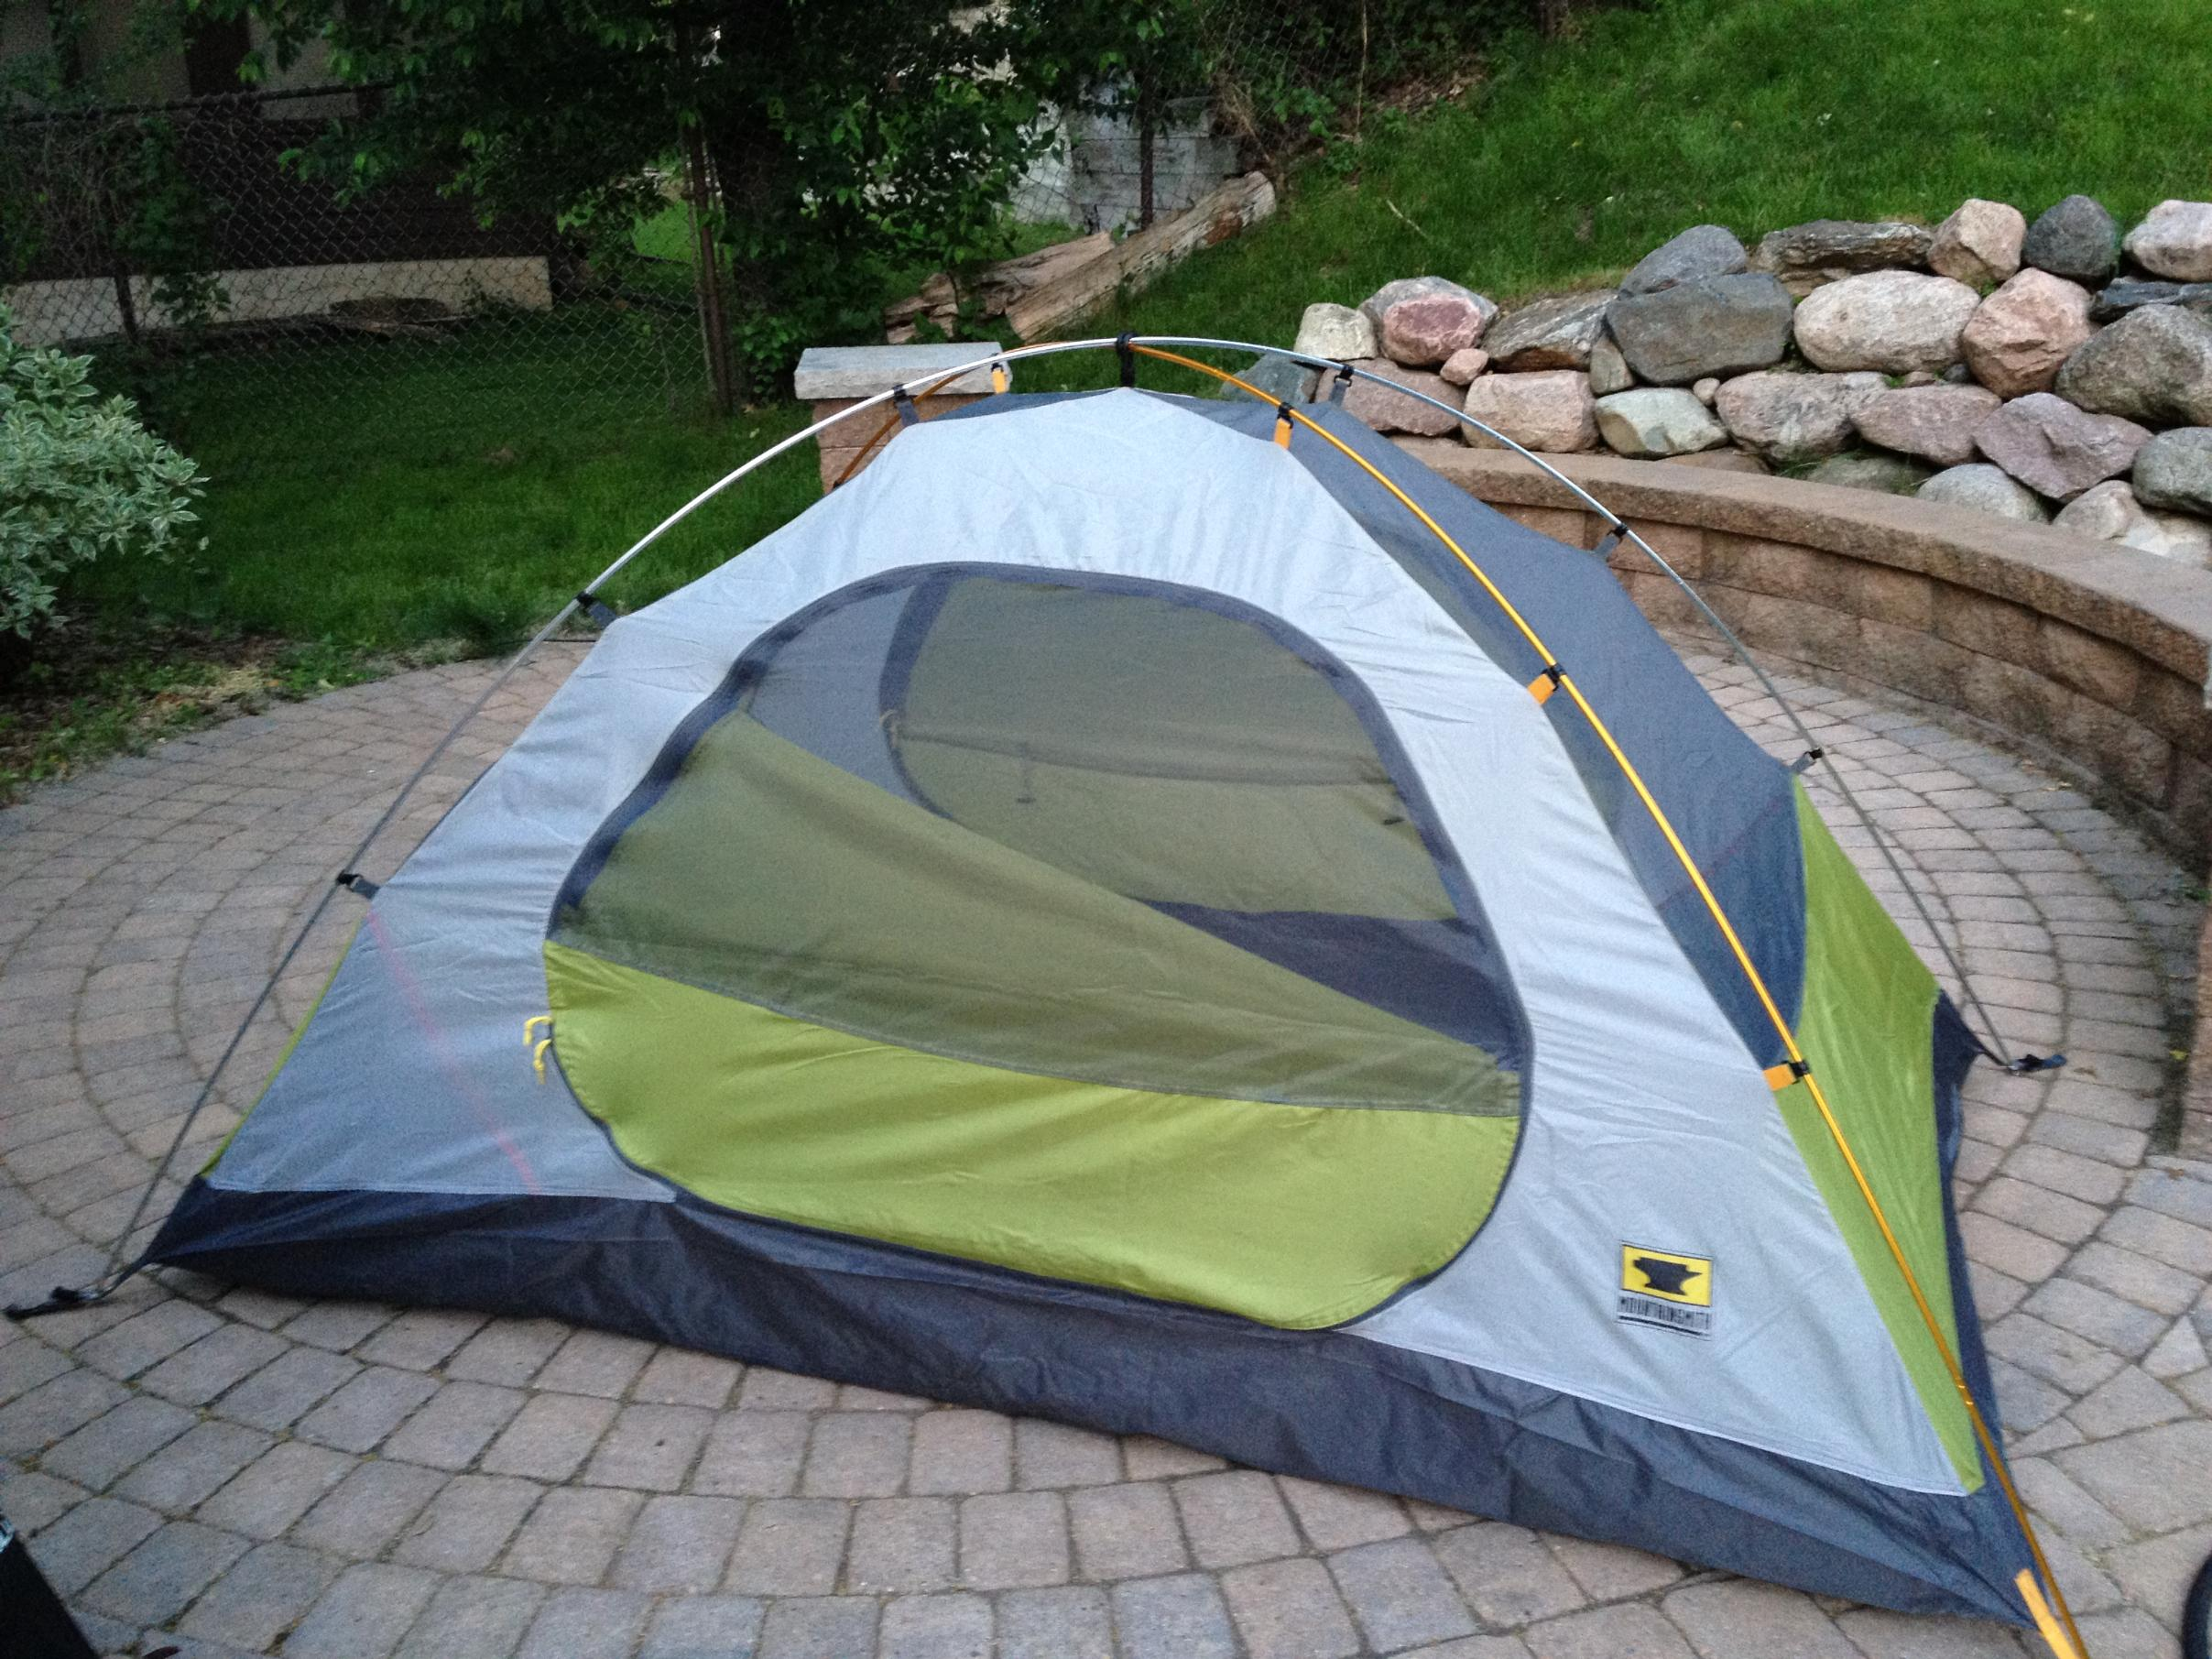 Our trip is next month so I havenu0027t used it yet but I donu0027t foresee any issues. & BWCA Mountainsmith Family Tent Boundary Waters Gear Forum